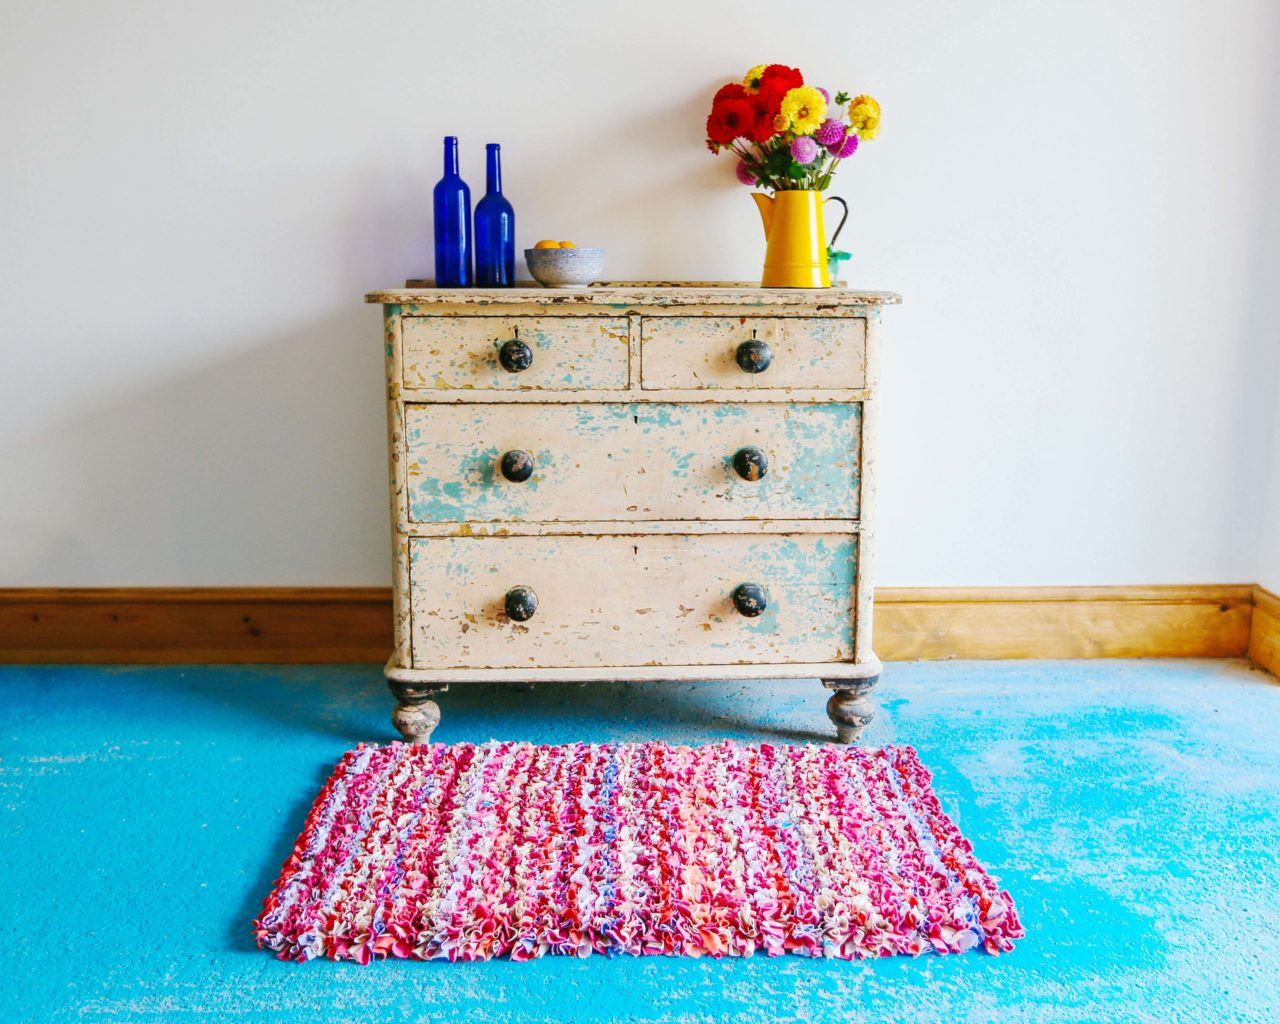 Ragged Life Pink Striped Rag Rug in front of chest of drawers